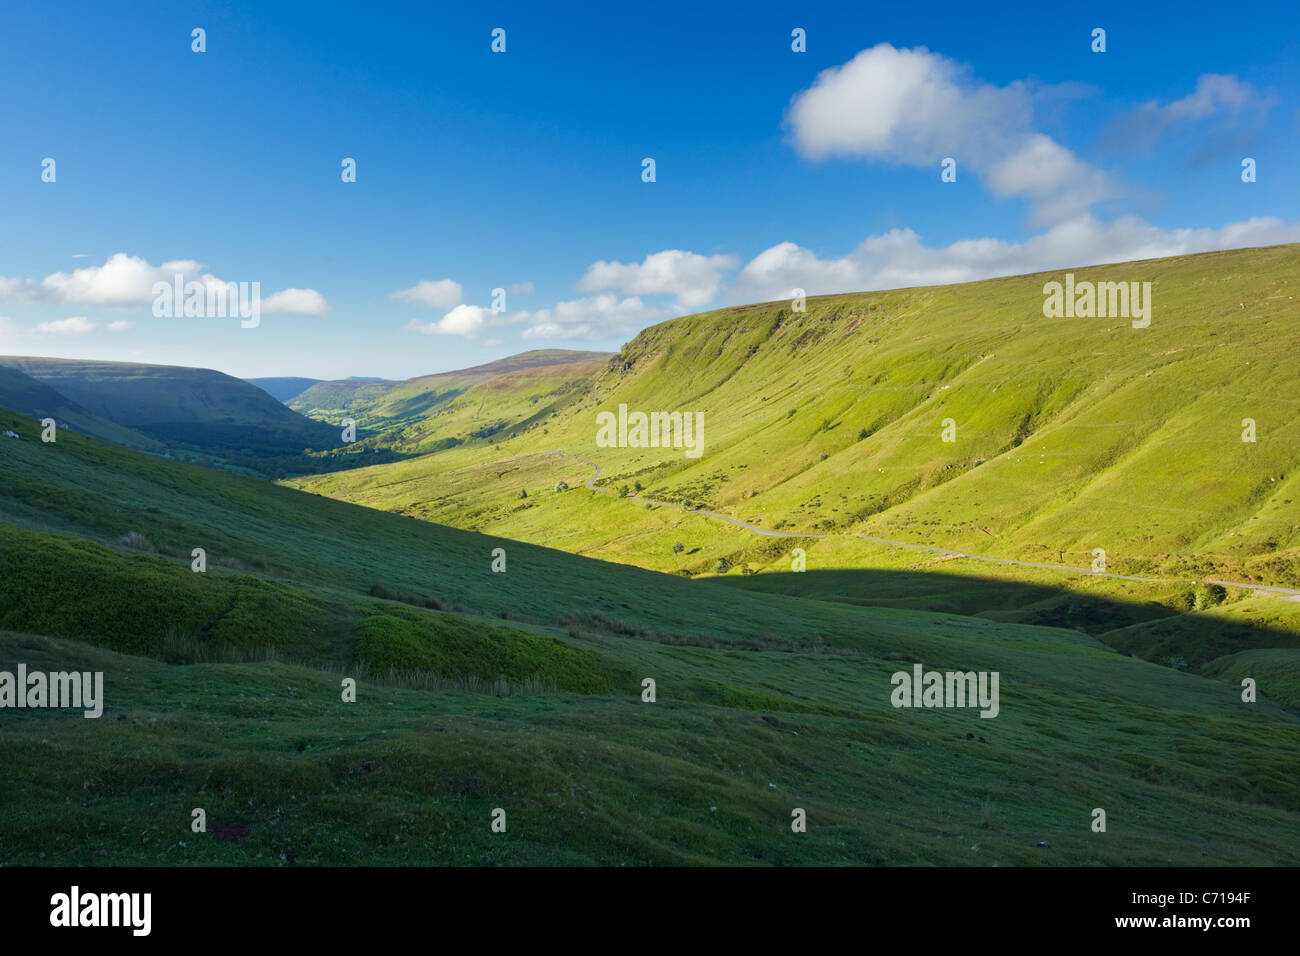 Gospel Pass. The Black Mountains. Brecon Beacons National Park. Powys. Wales. UK. - Stock Image